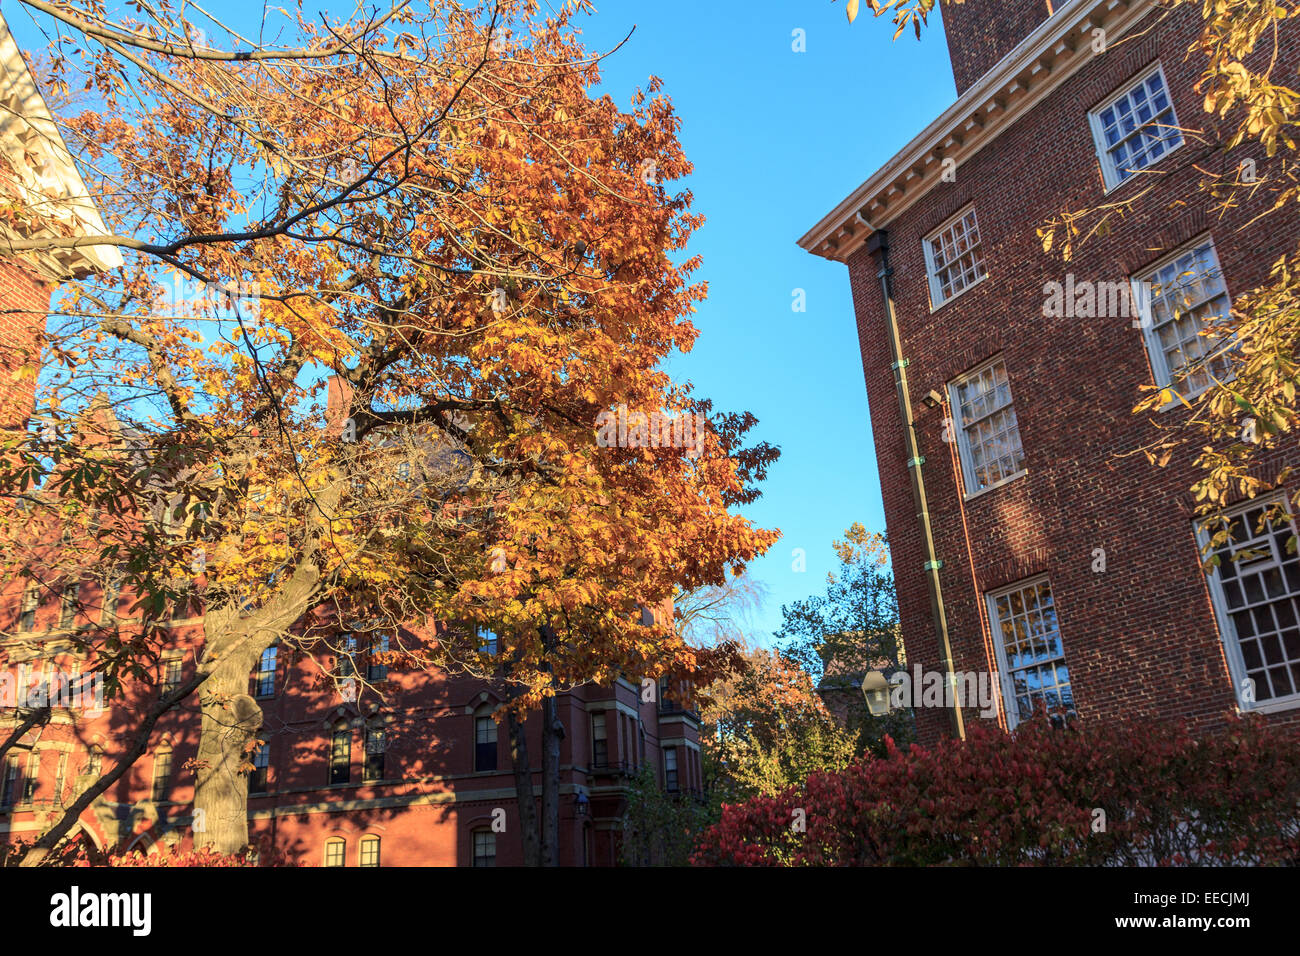 Colorful fall foliage and historic dorm buildings on the campus of Harvard University in Cambridge, MA, USA. - Stock Image